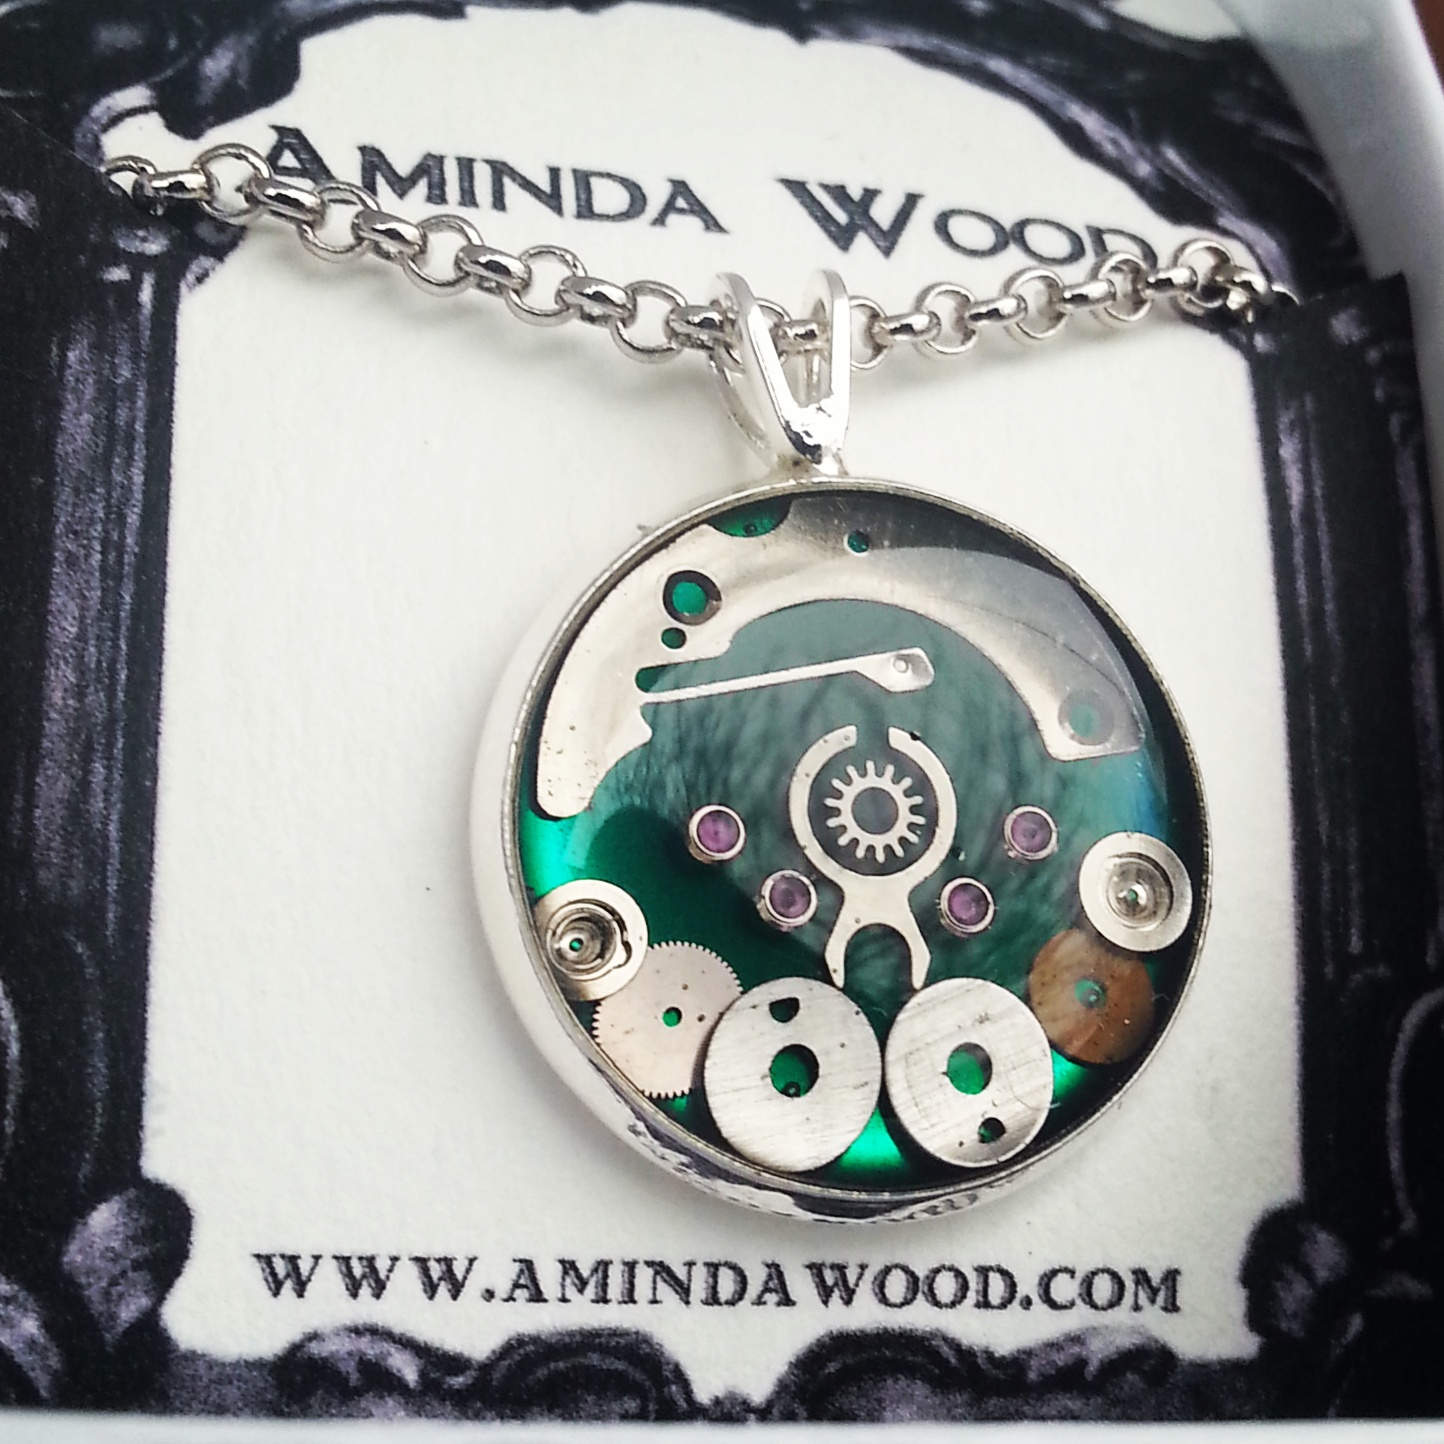 These are my newest style pendants and they measure only 2.5cm in diameter! Each one contains a unique collage of watch parts.